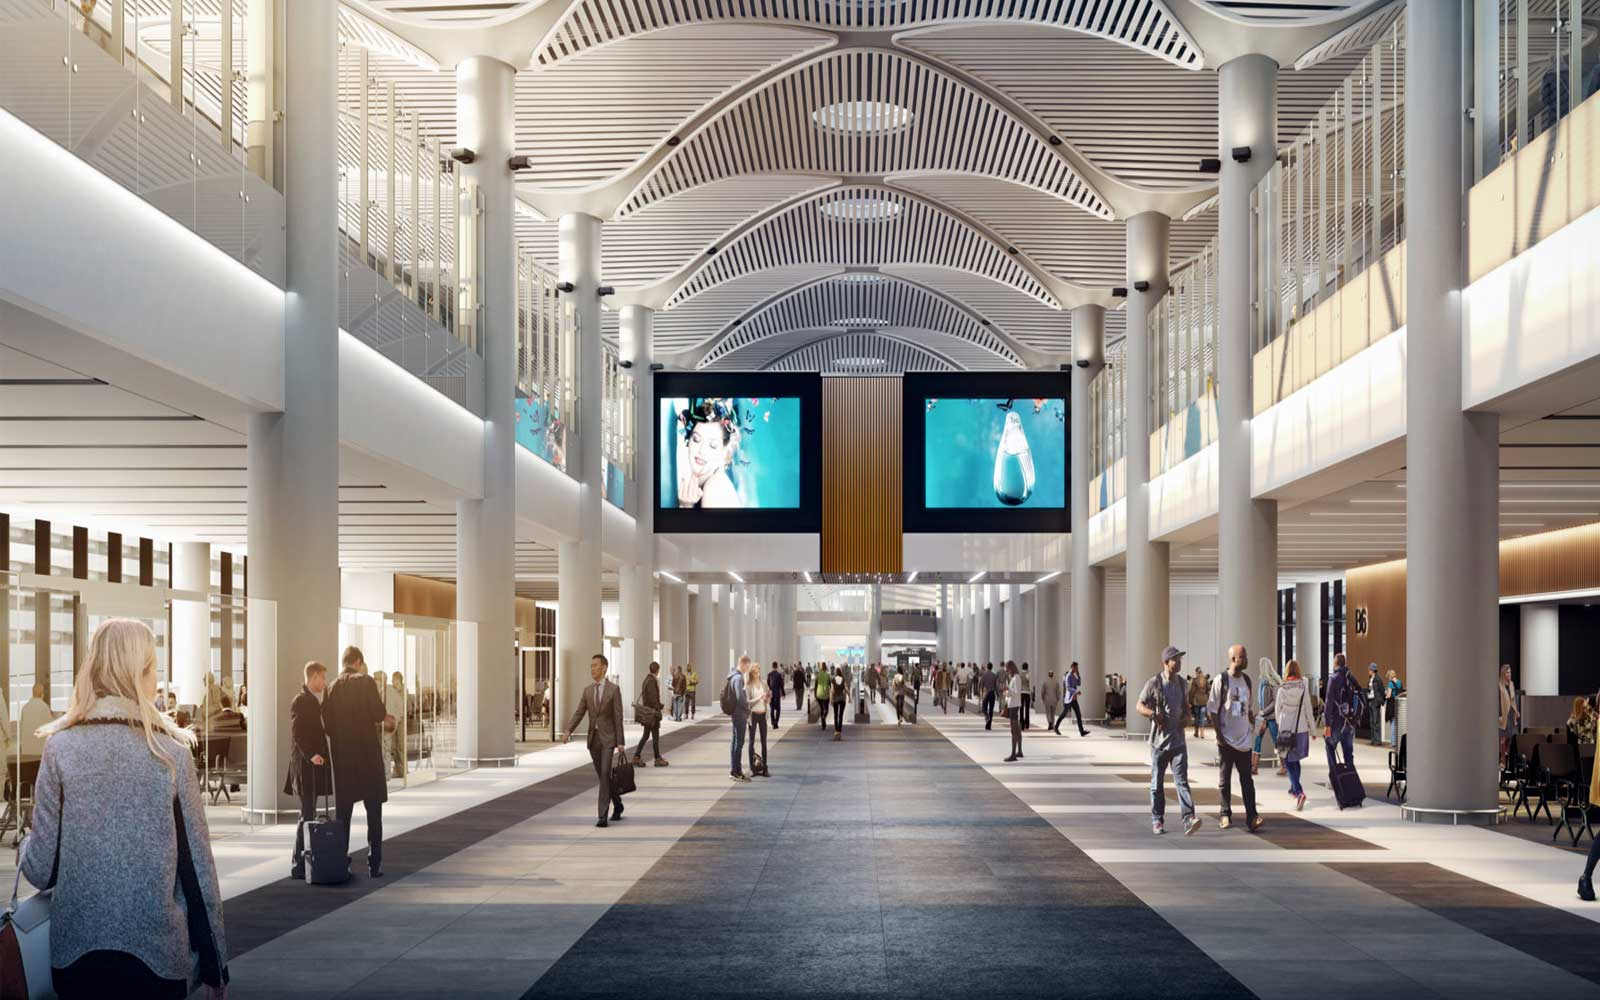 The airport will have screens that provide real-time alerts and flight information.